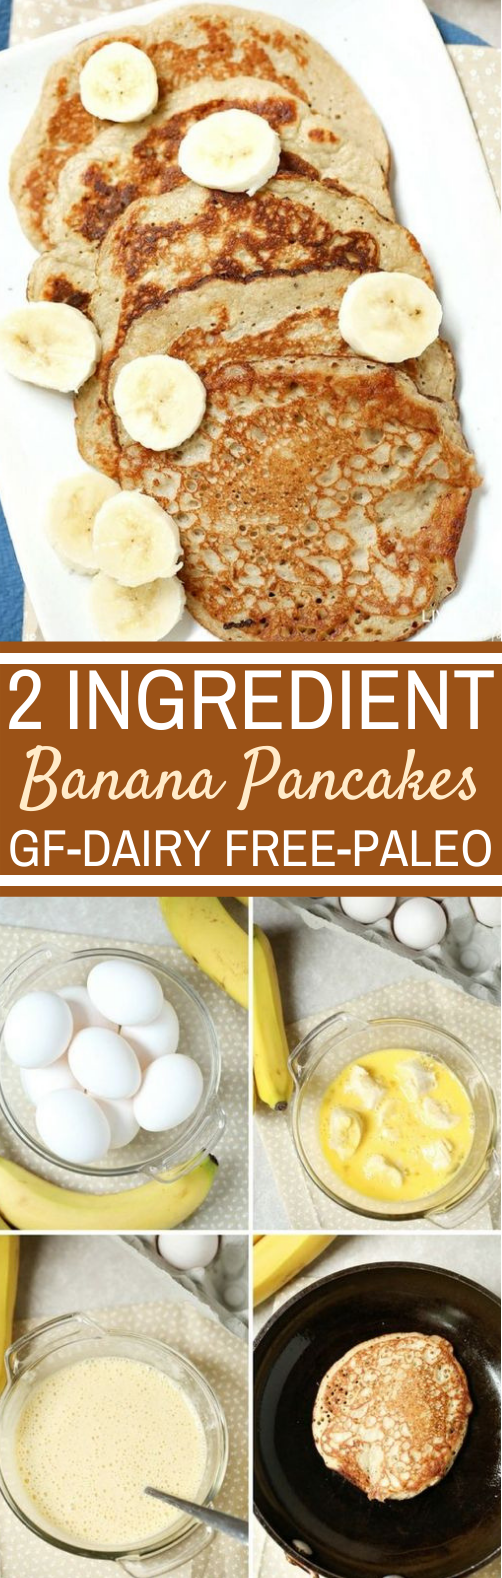 2-Ingredient Banana Pancakes #healthy #breakfast #glutenfree #lowcarb #pancakes